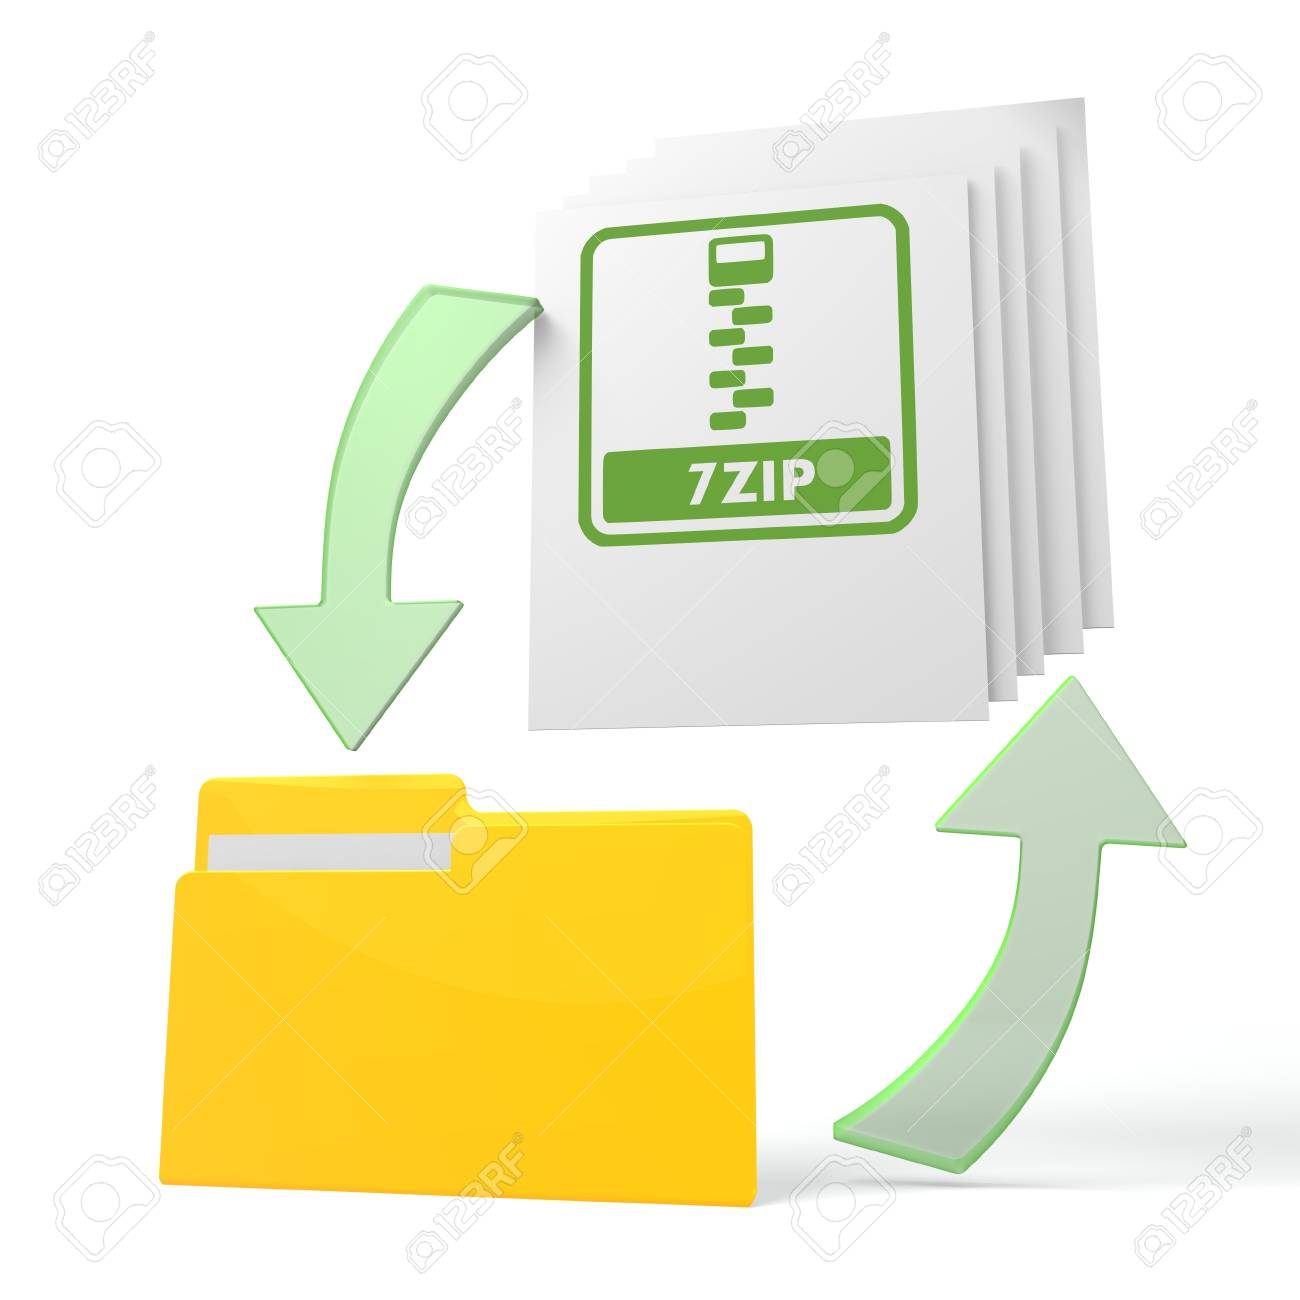 isolated 3d file folder with 7zip file symbol on documents with